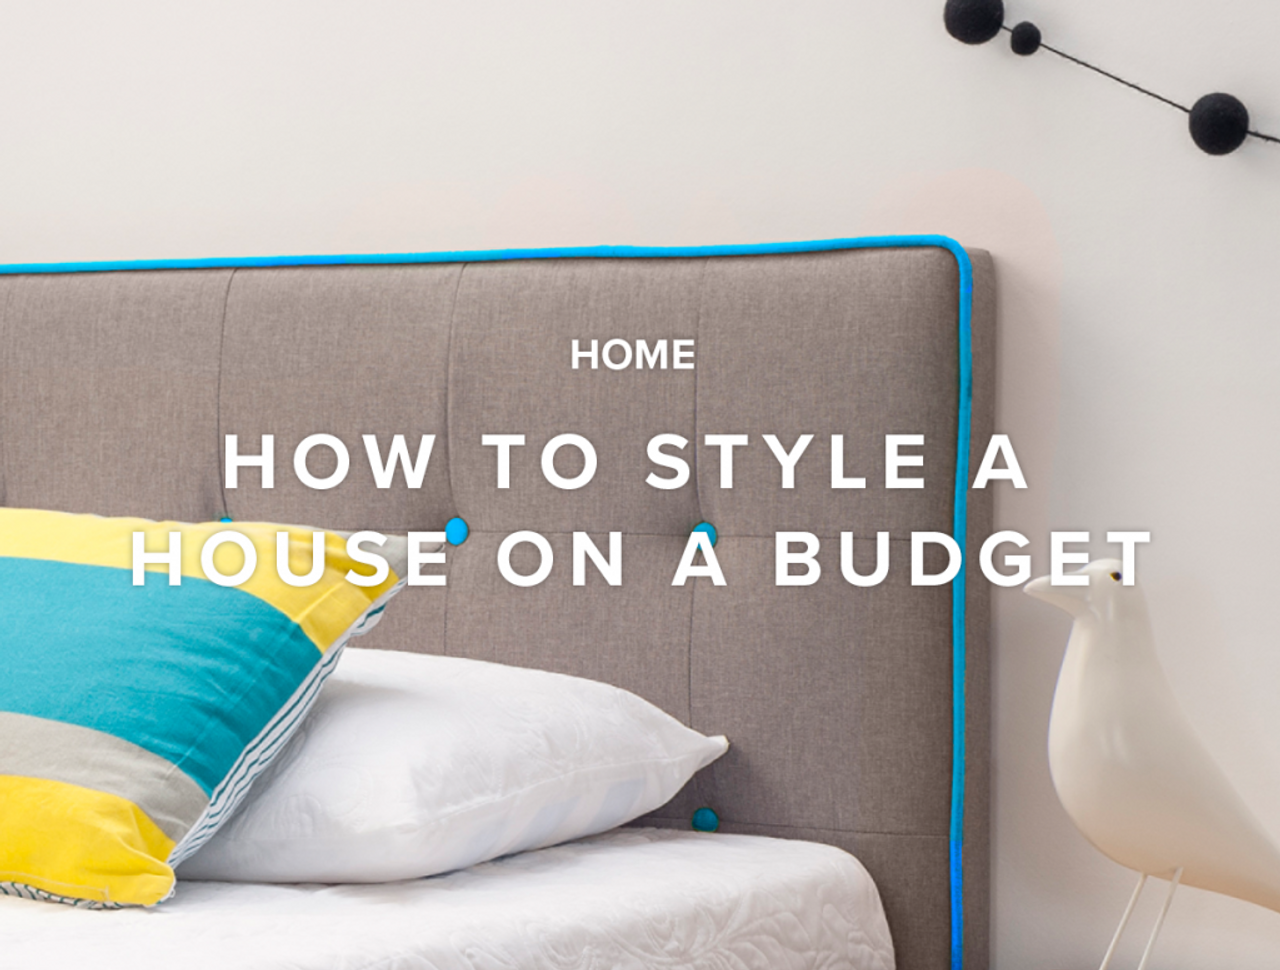 How To Style a House On a Budget